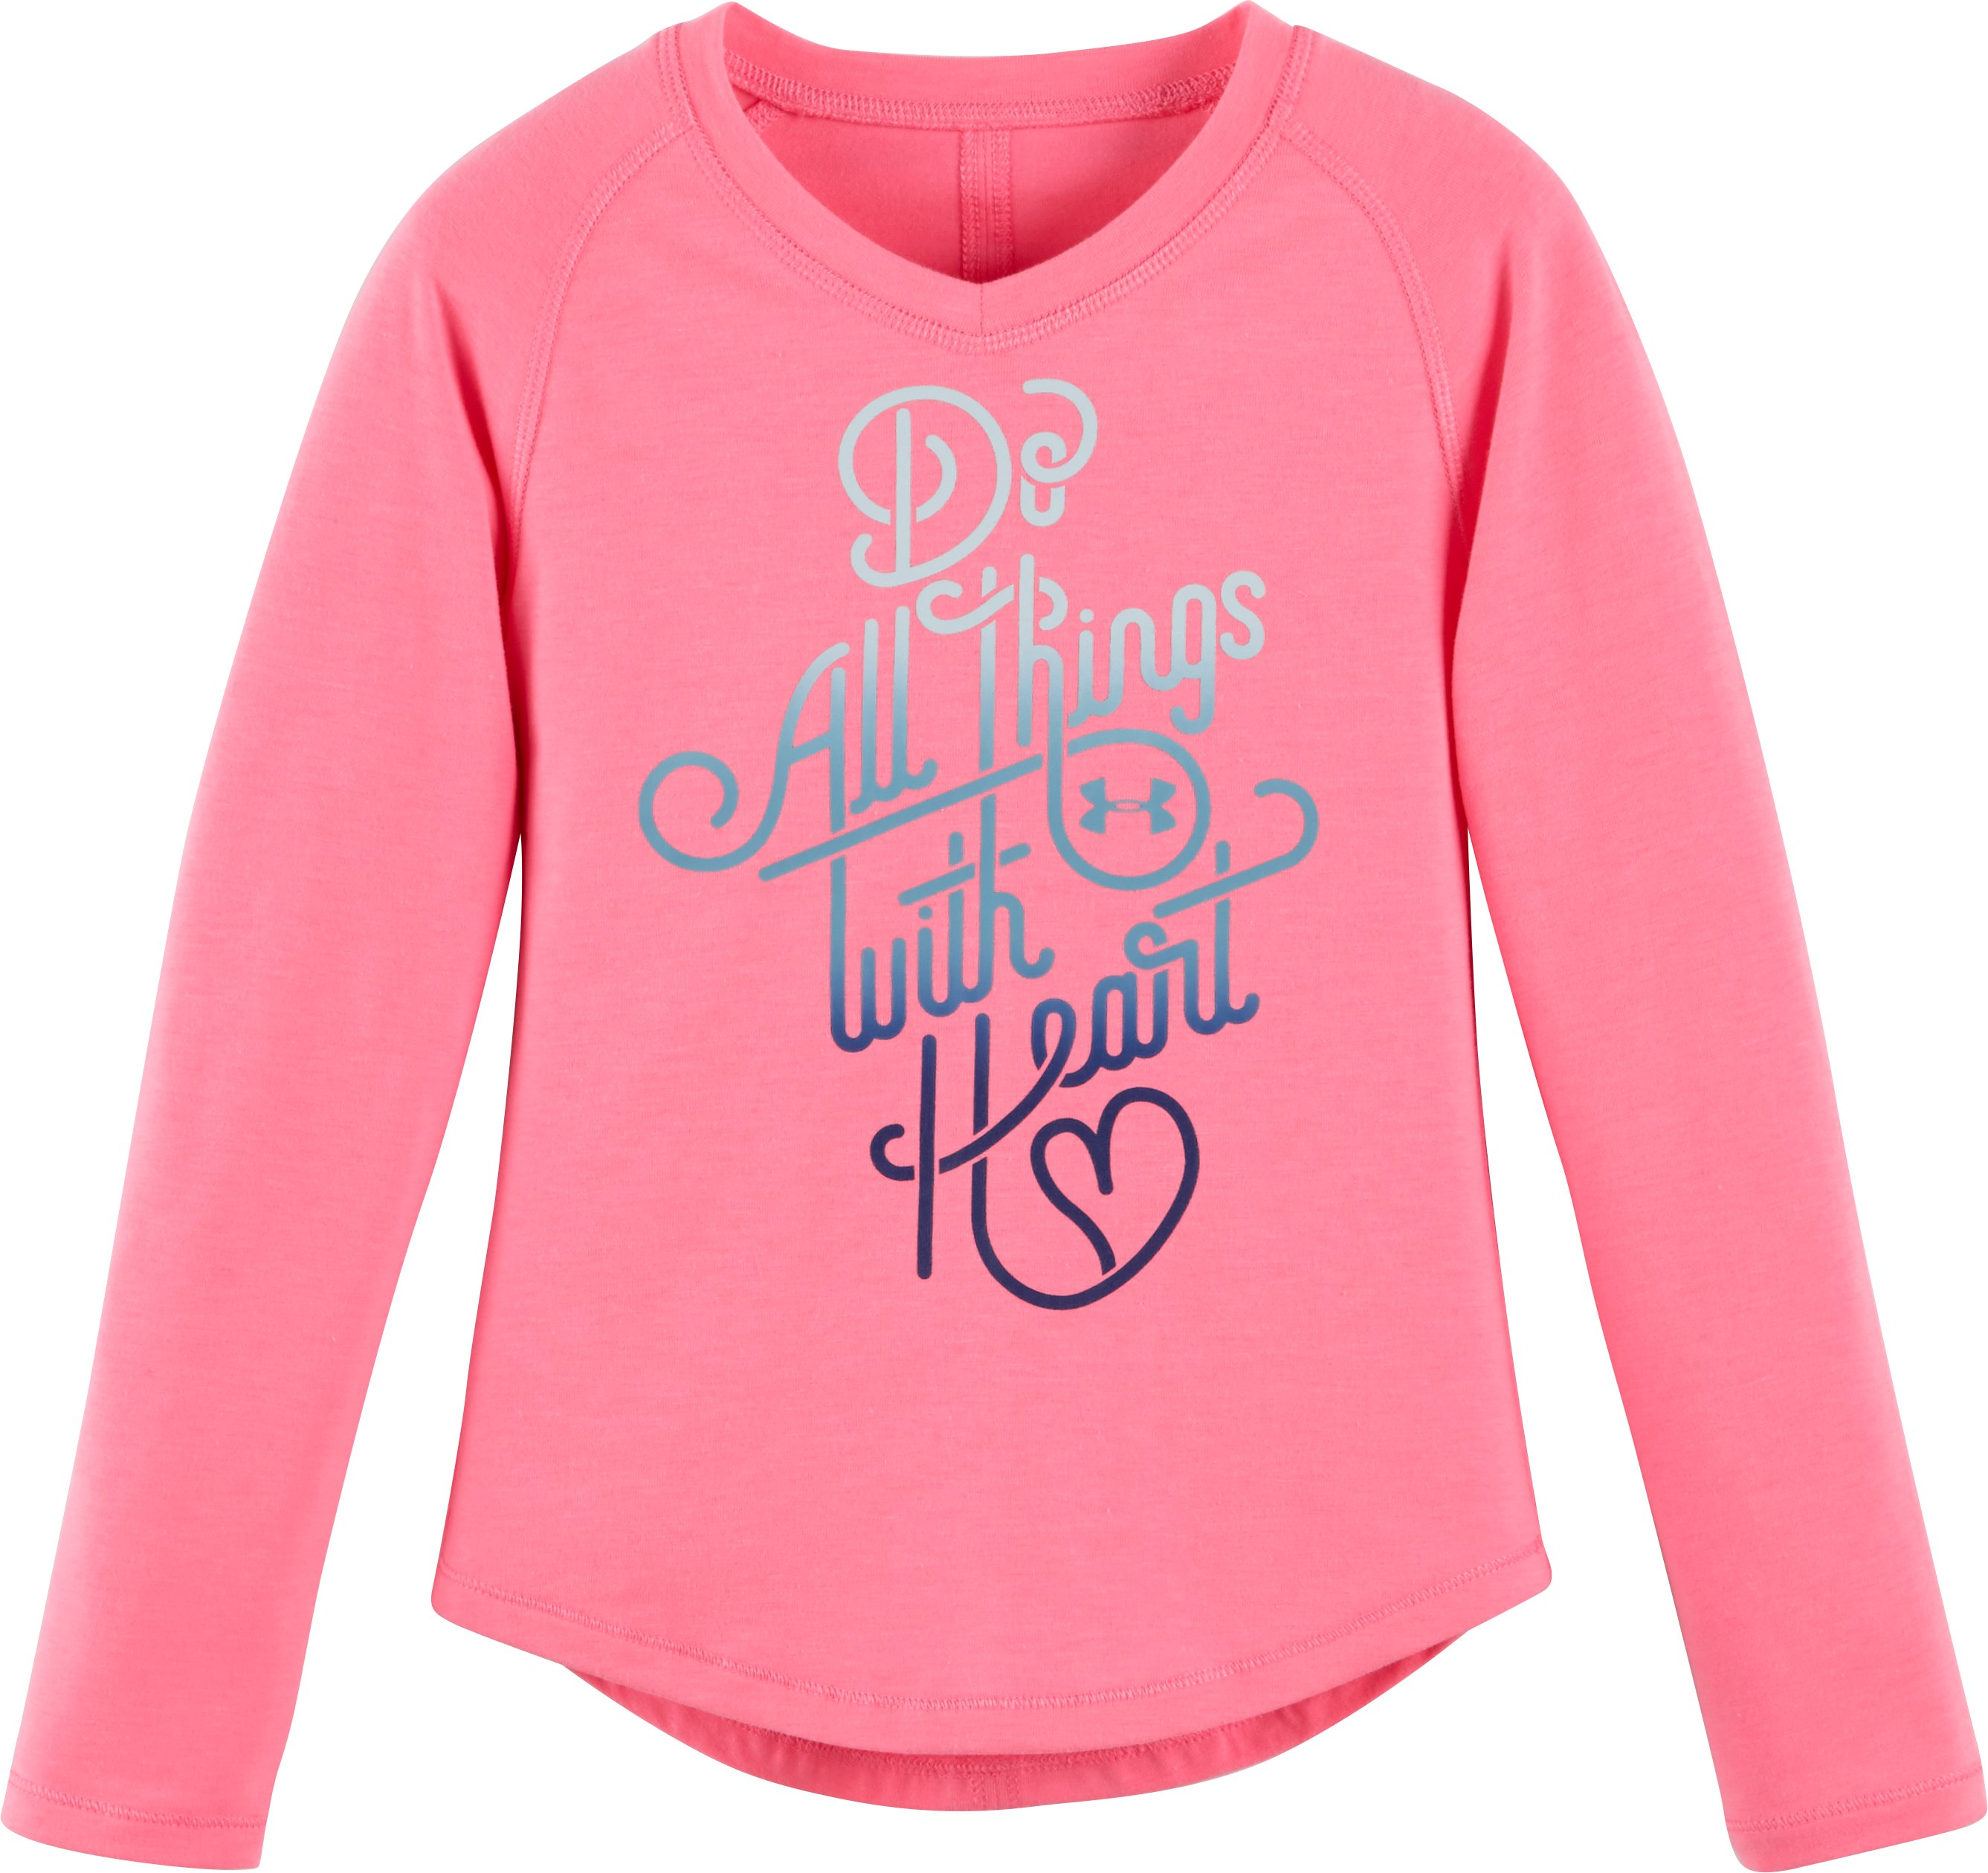 Girls' Infant UA Do All Things With <3 V-Neck, PINK PUNK